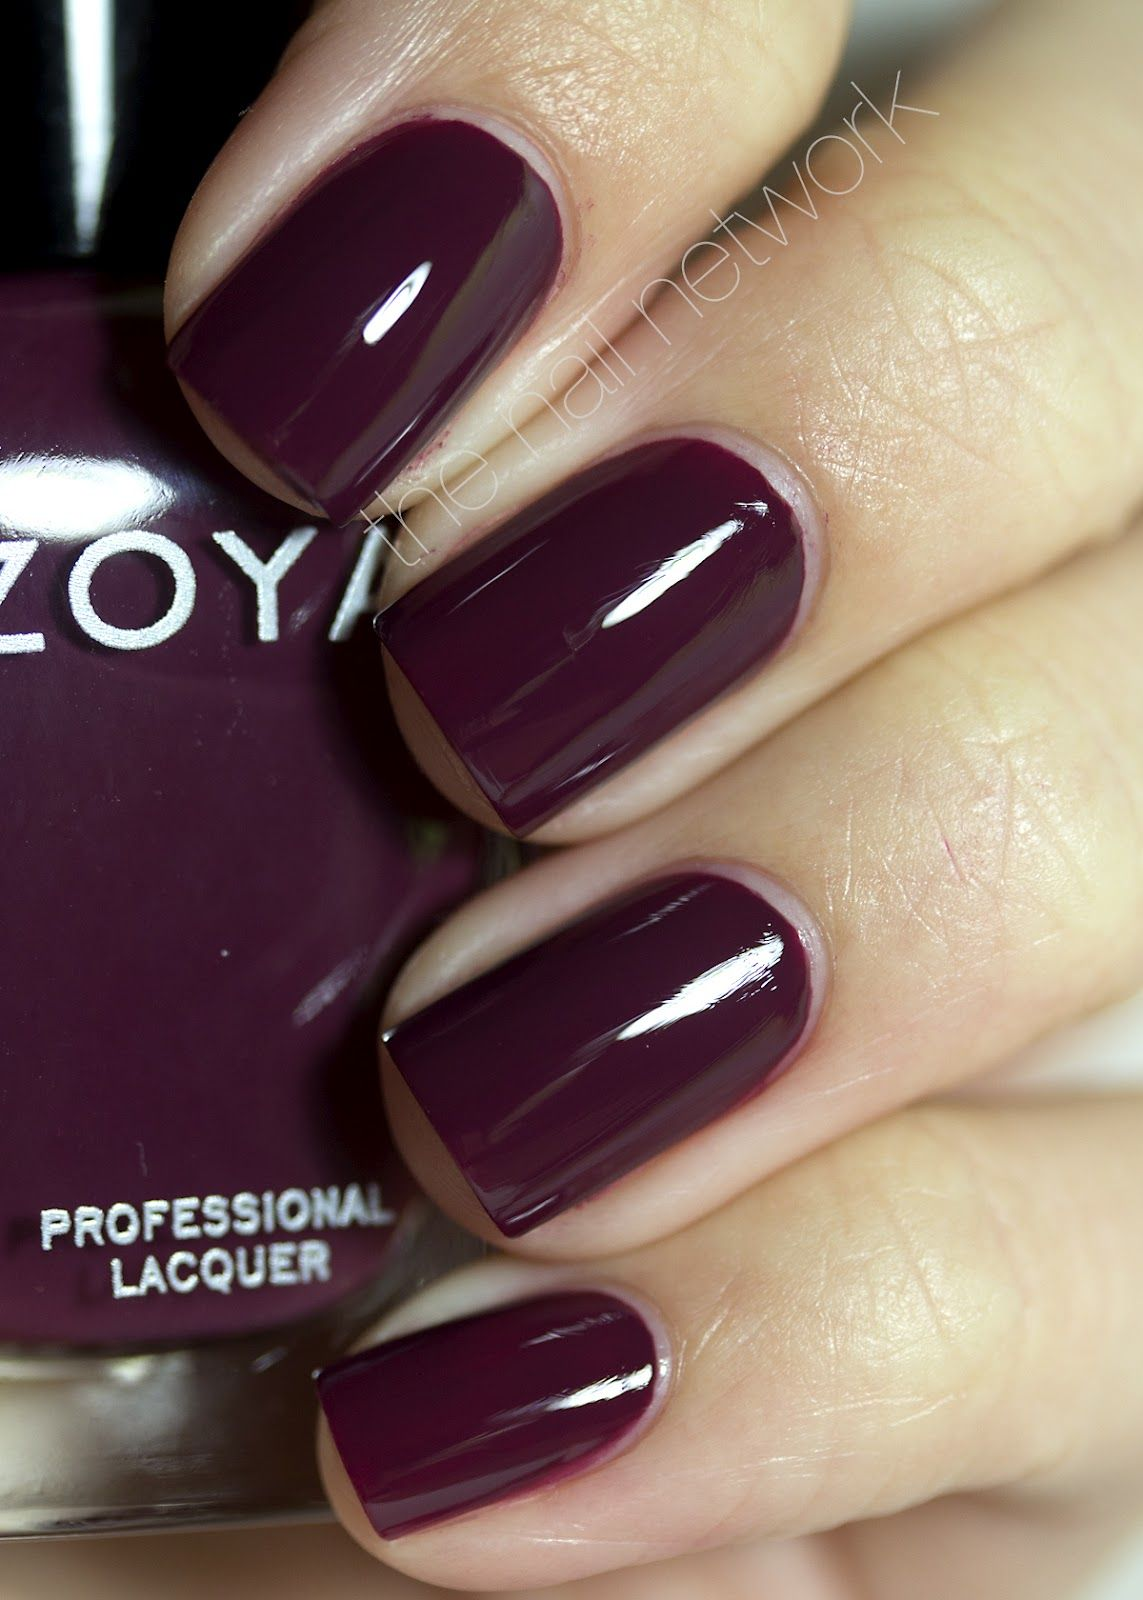 Zoya Designer Collection I Love Polish So Many Colors To Choose From Since Making The Switch Gel Sandwich My Color In Between